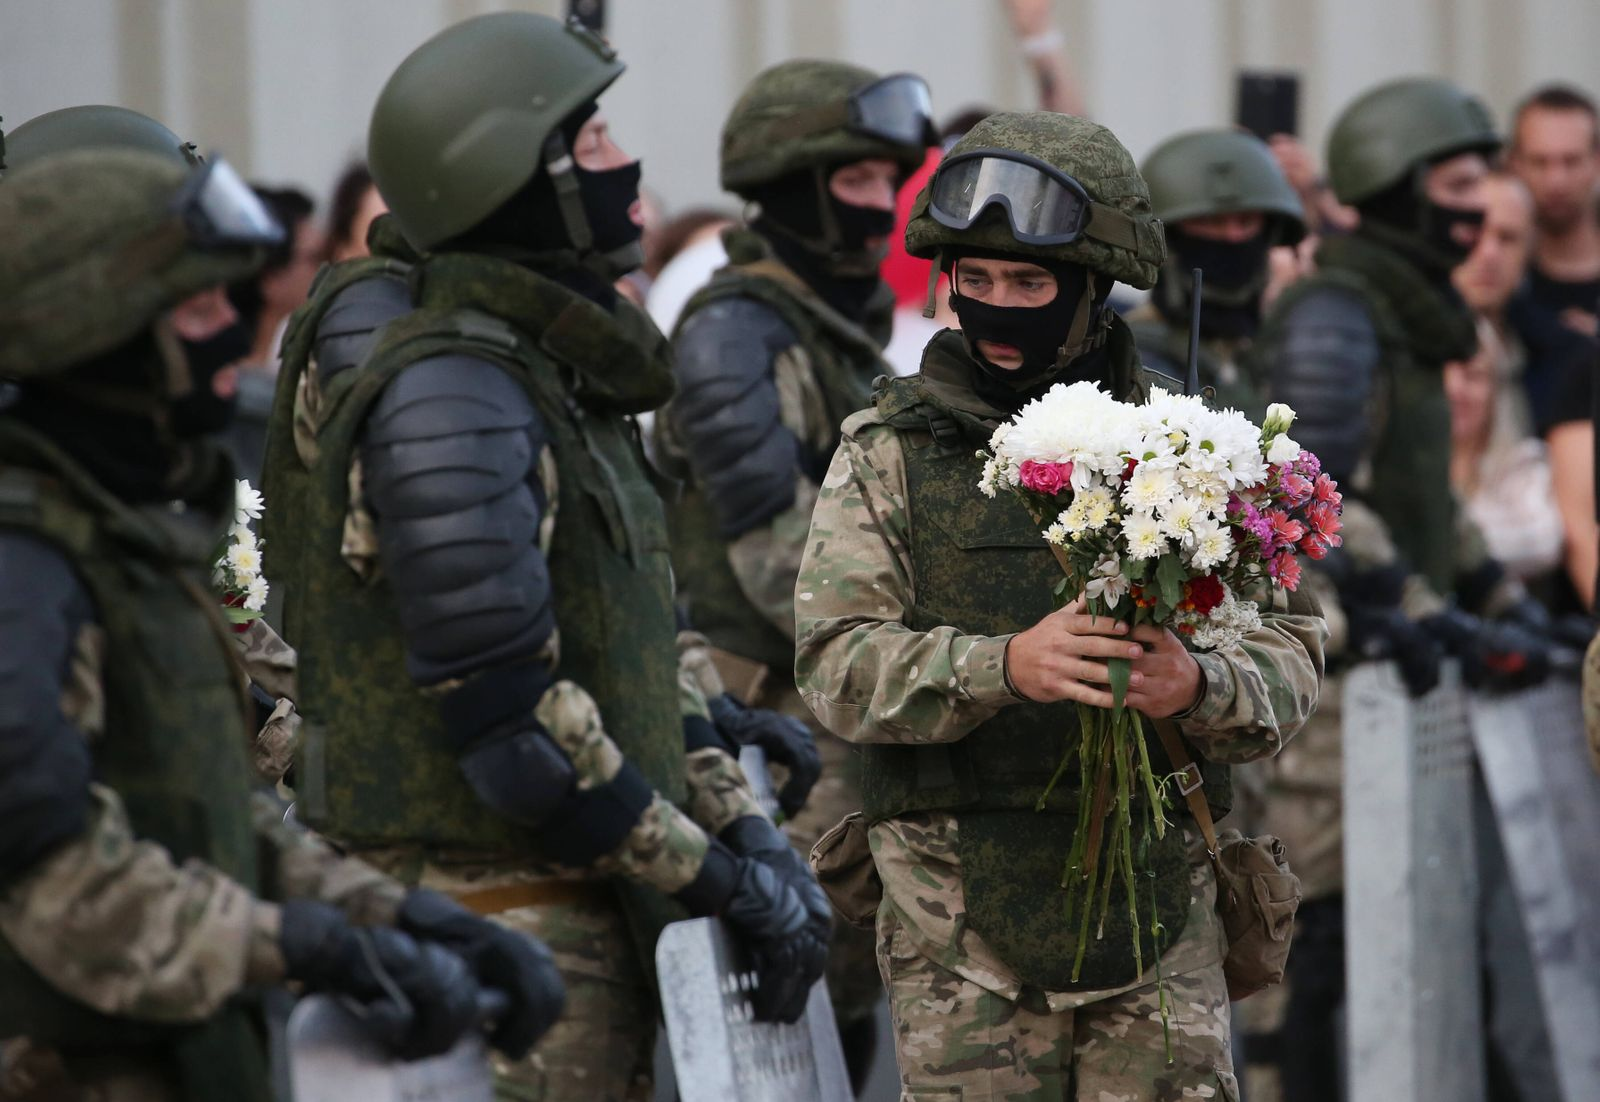 MINSK, BELARUS - AUGUST 14, 2020: A Belarusian law enforcement officer holds flowers during a protest against the resul